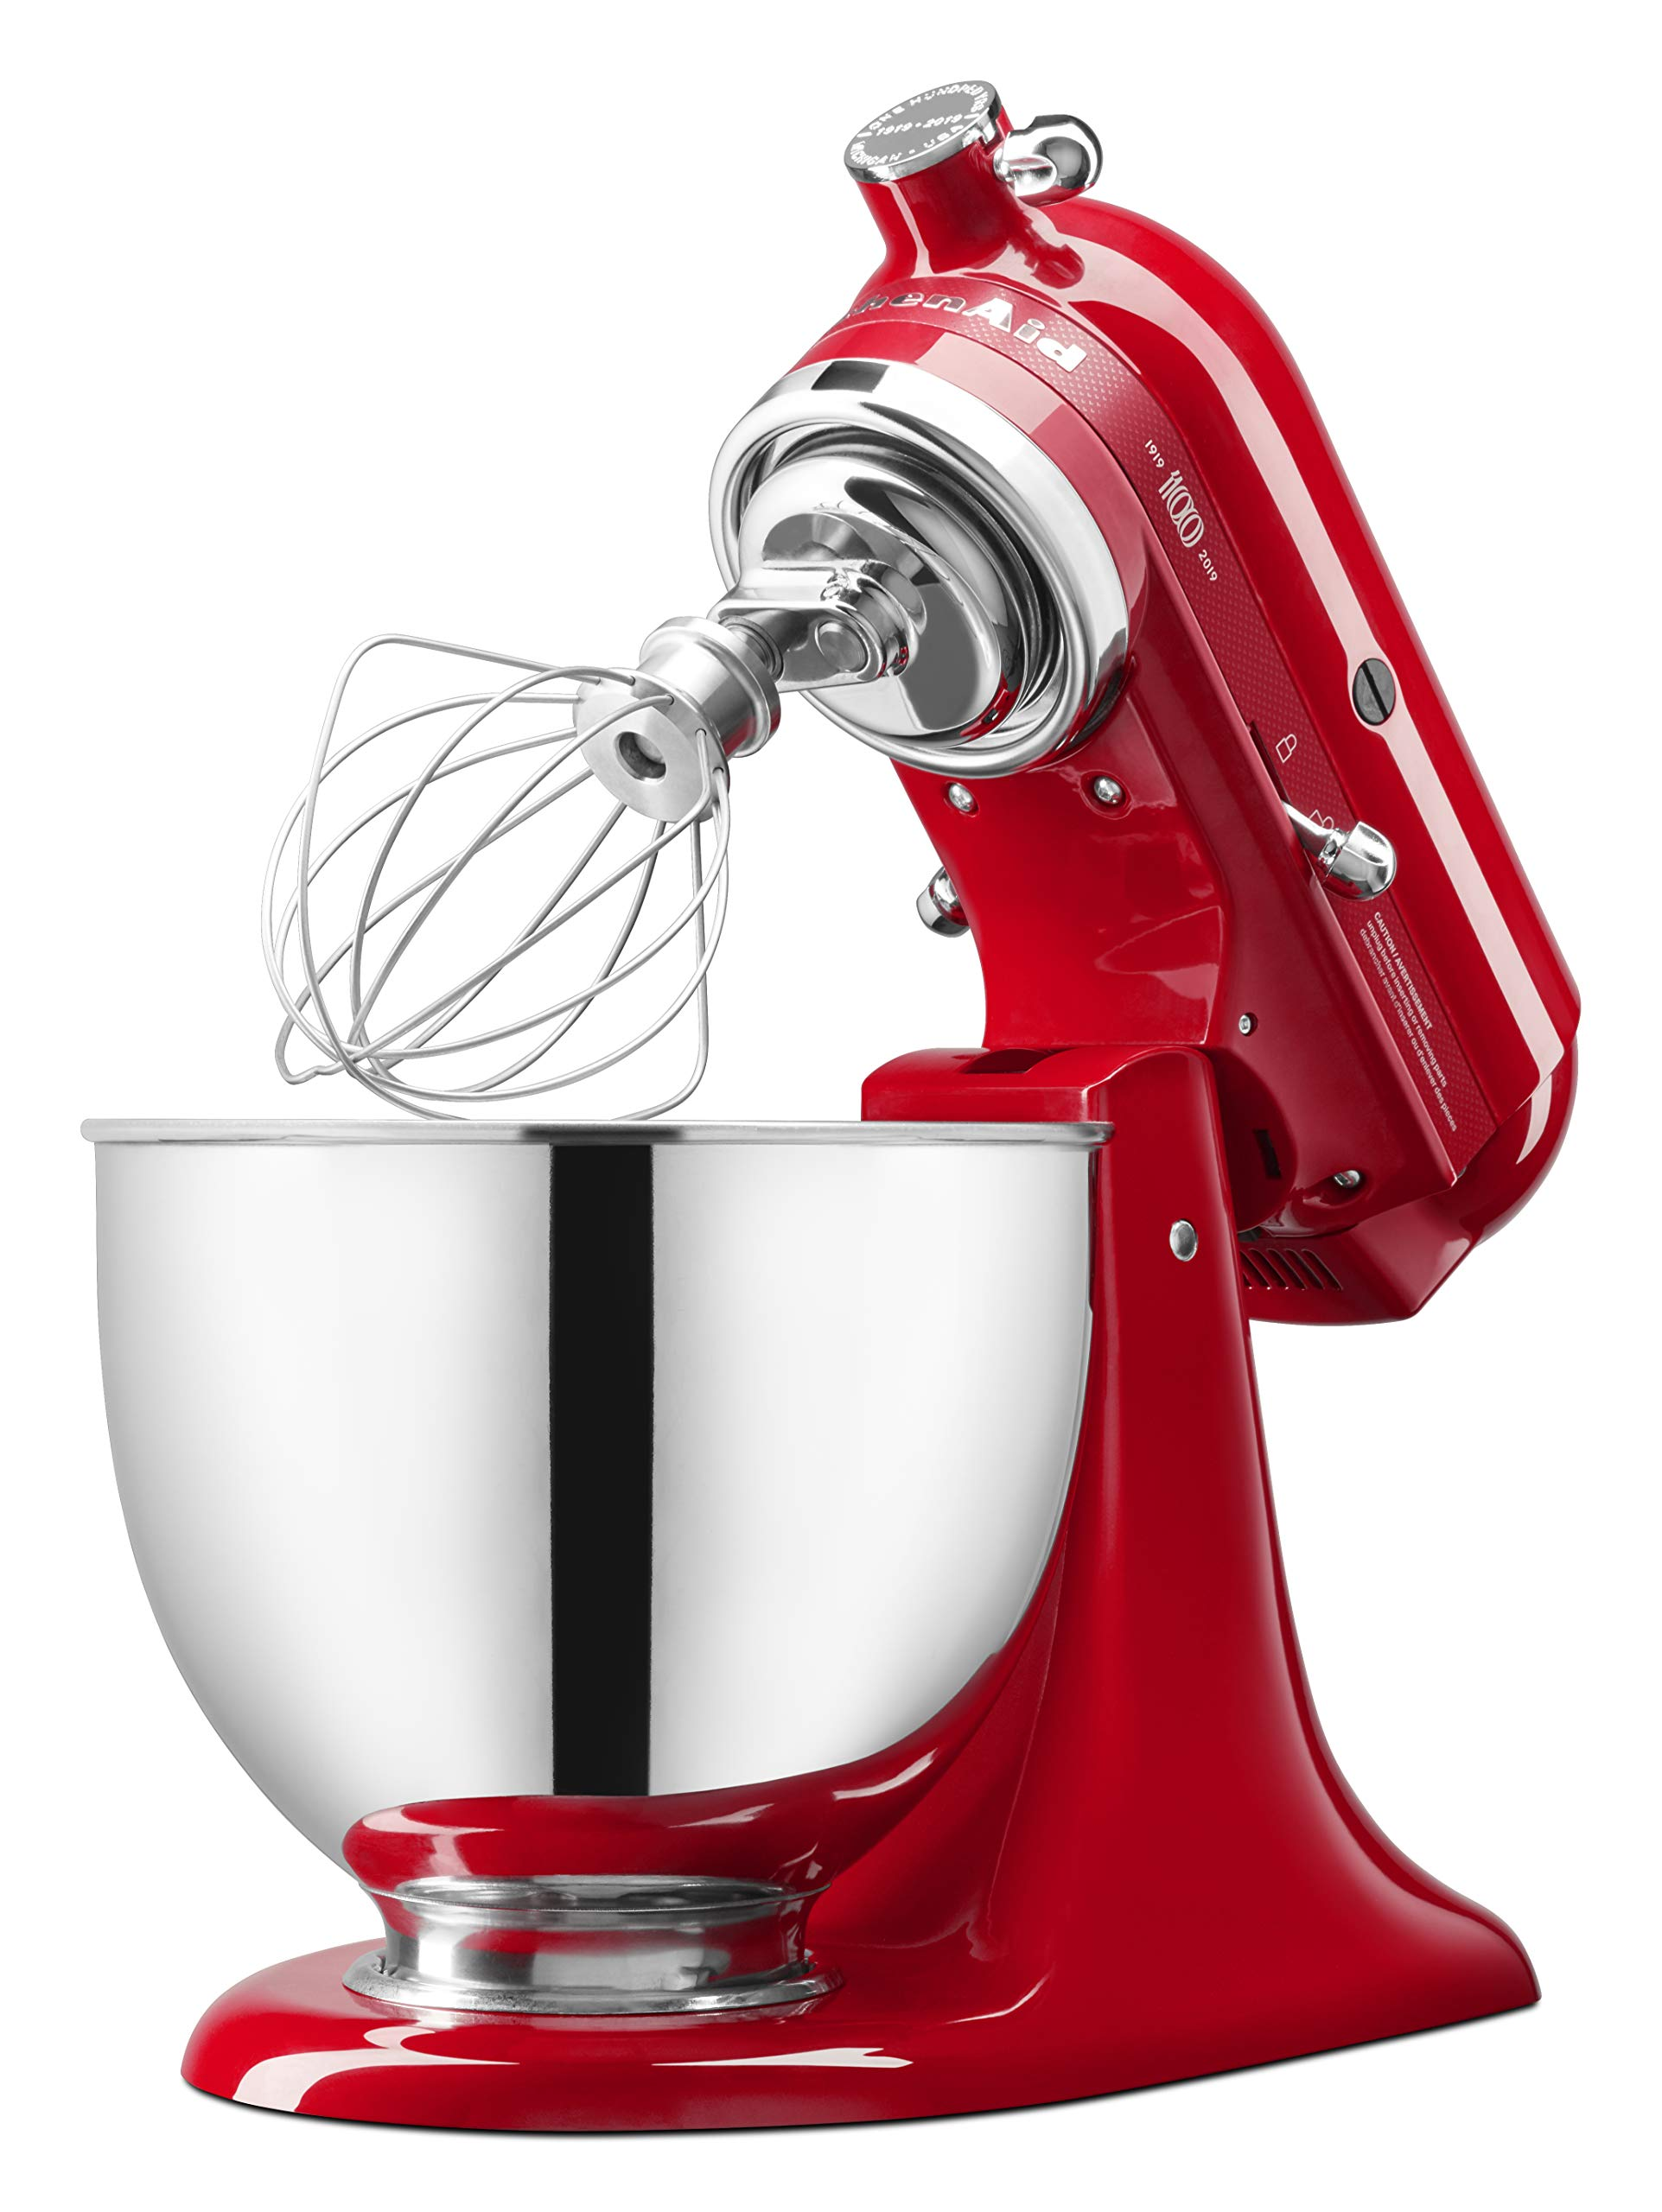 KitchenAid KSM180QHSD 100 Year Limited Edition Queen of Hearts Stand Mixer, Passion Red by KitchenAid (Image #5)